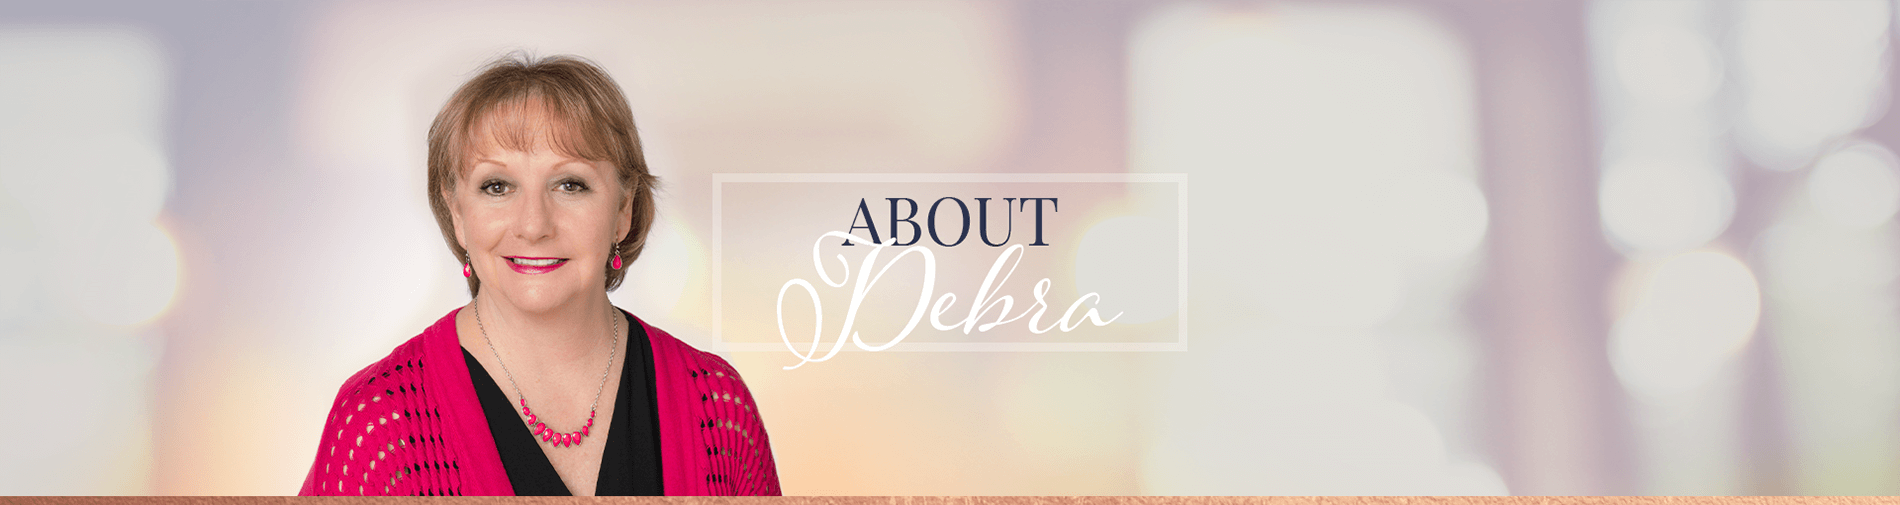 About Debra Irene